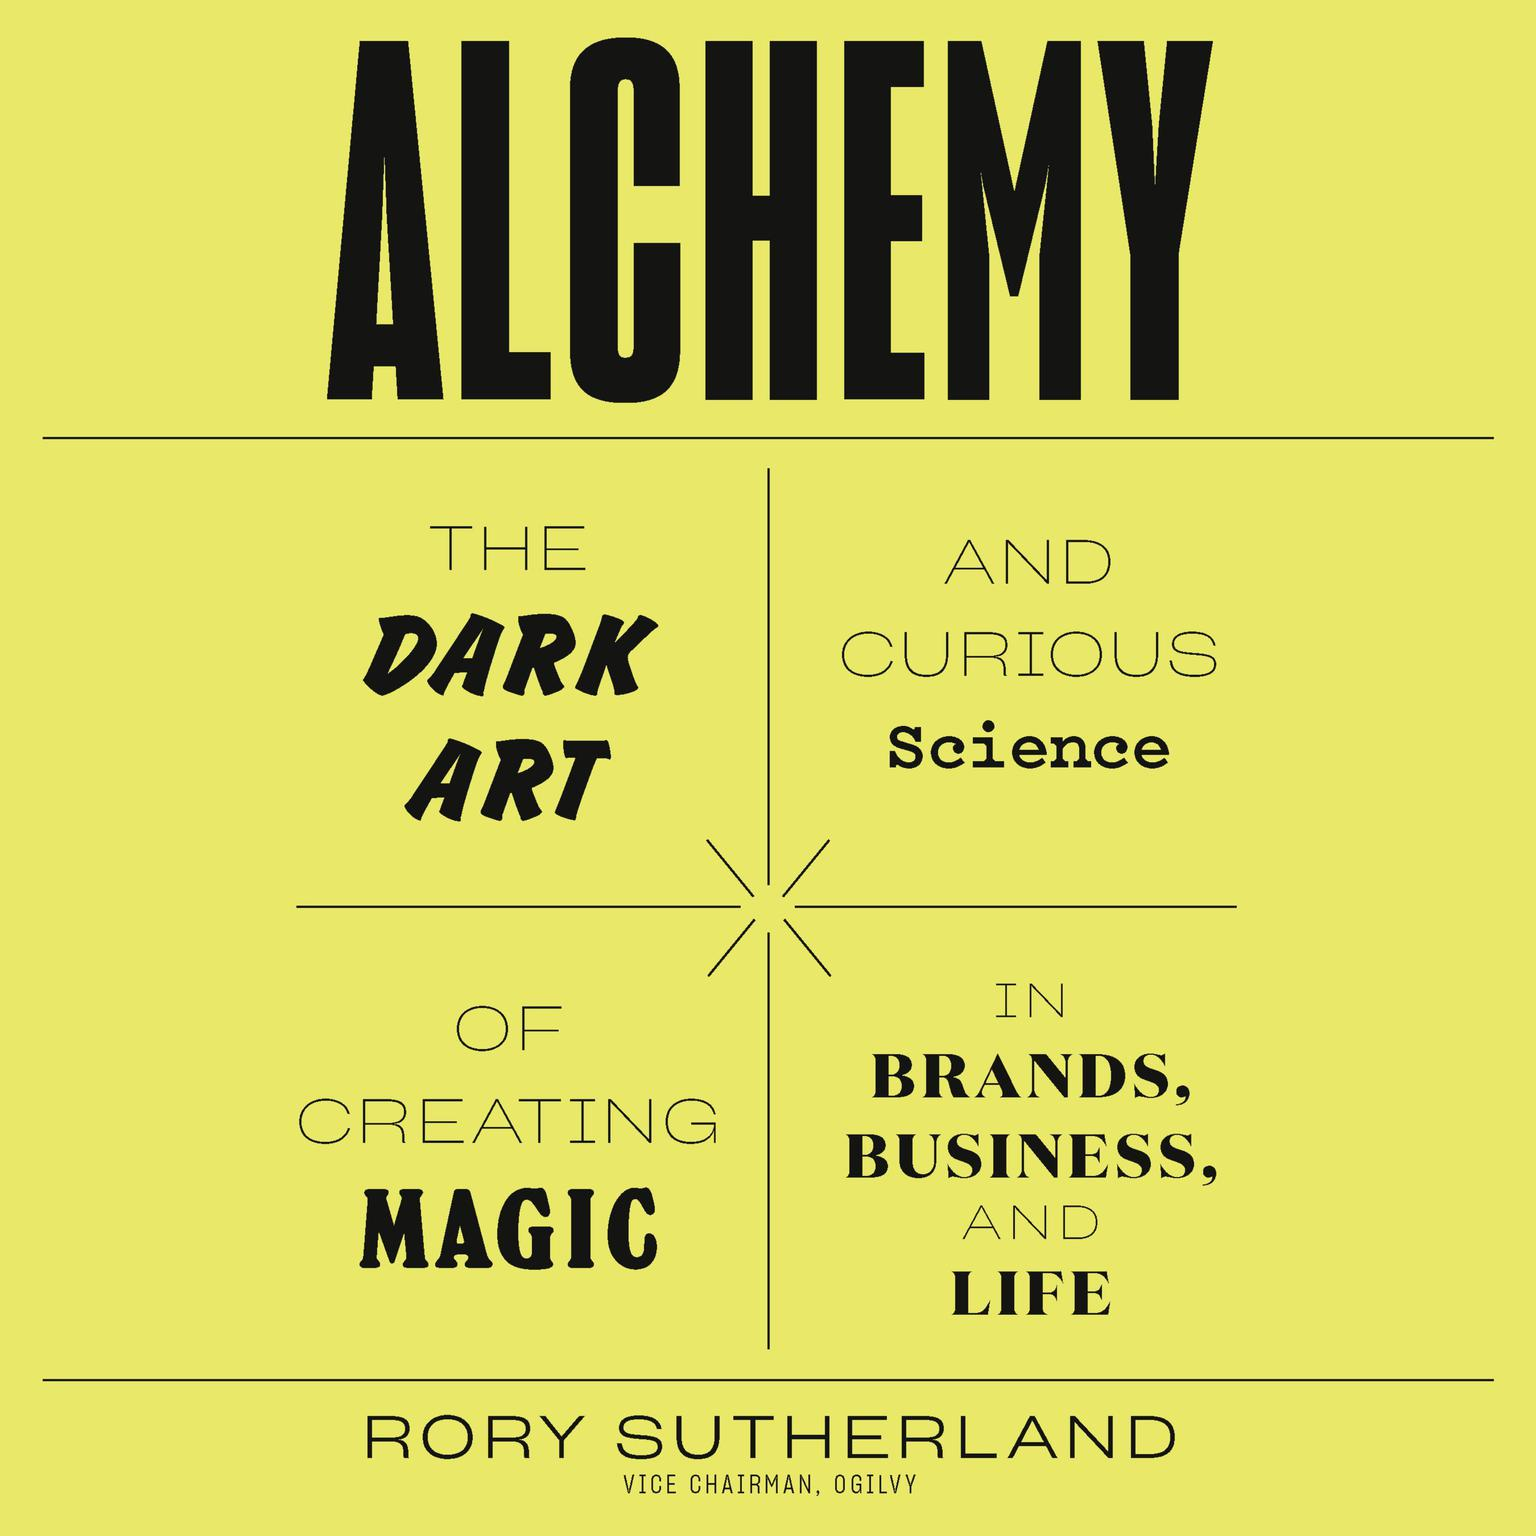 Alchemy: The Dark Art and Curious Science of Creating Magic in Brands, Business, and Life Audiobook, by Rory Sutherland